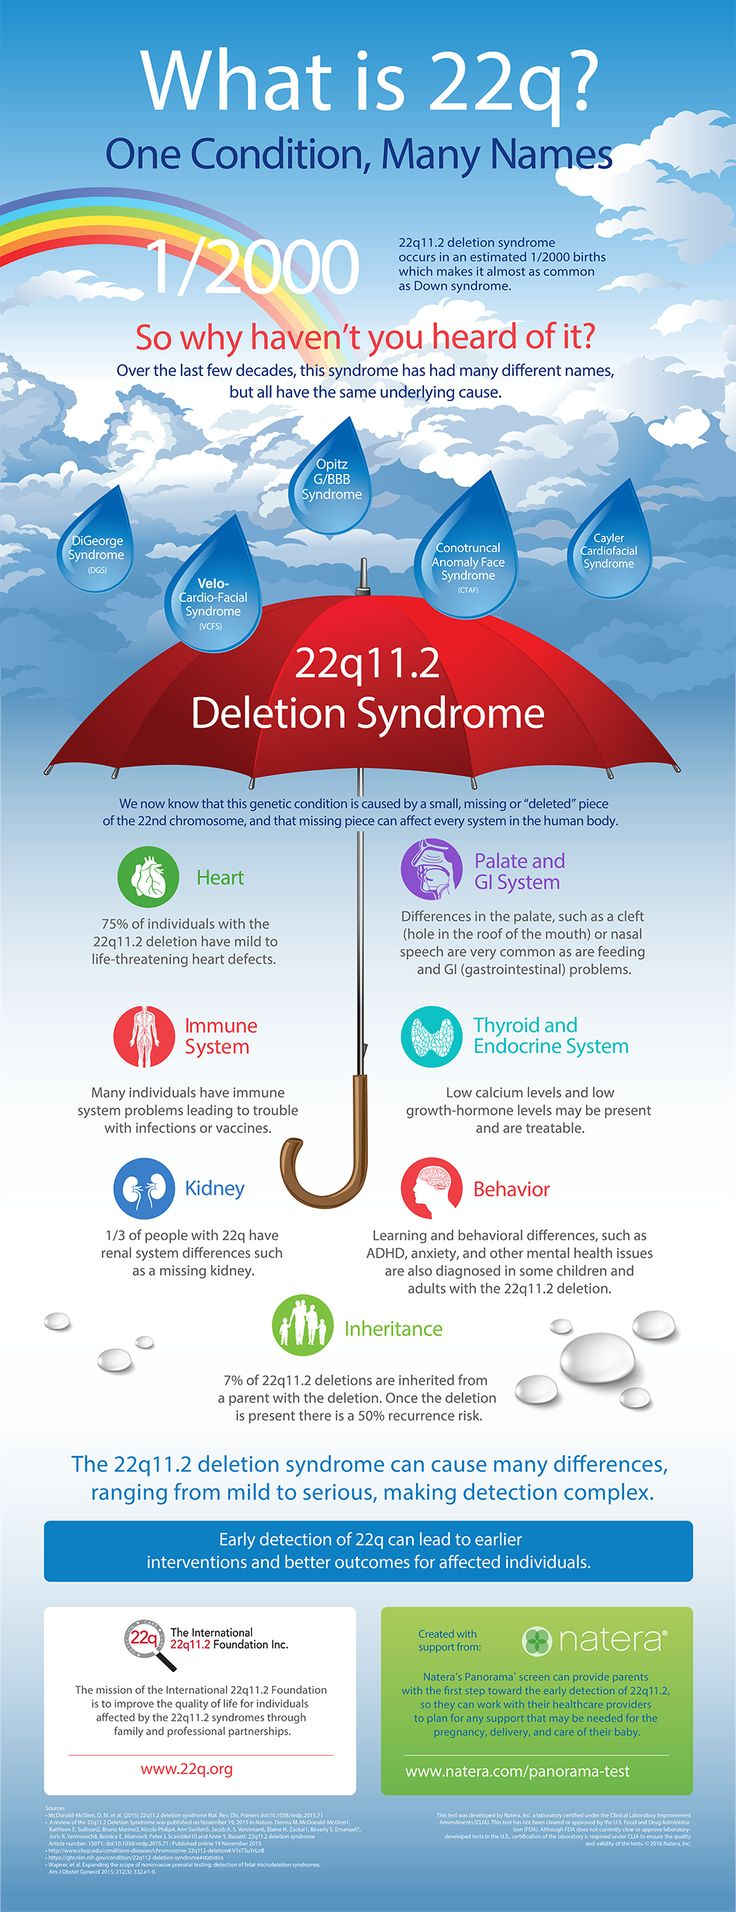 22q11.2 deletion syndrome is thought to be almost as common as Down syndrome. So why haven't you heard of it?  Until recently, this syndrome had many different names since the underlying cause was unknown. Now we know it results from a missing section of chromosome 22. A key to early diagnosis of 22q is prenatal genetic screening. Natera's Panorama prenatal screen can provide parents with their first steps towards the early detection of genetic conditions so that they  can prepare for their…